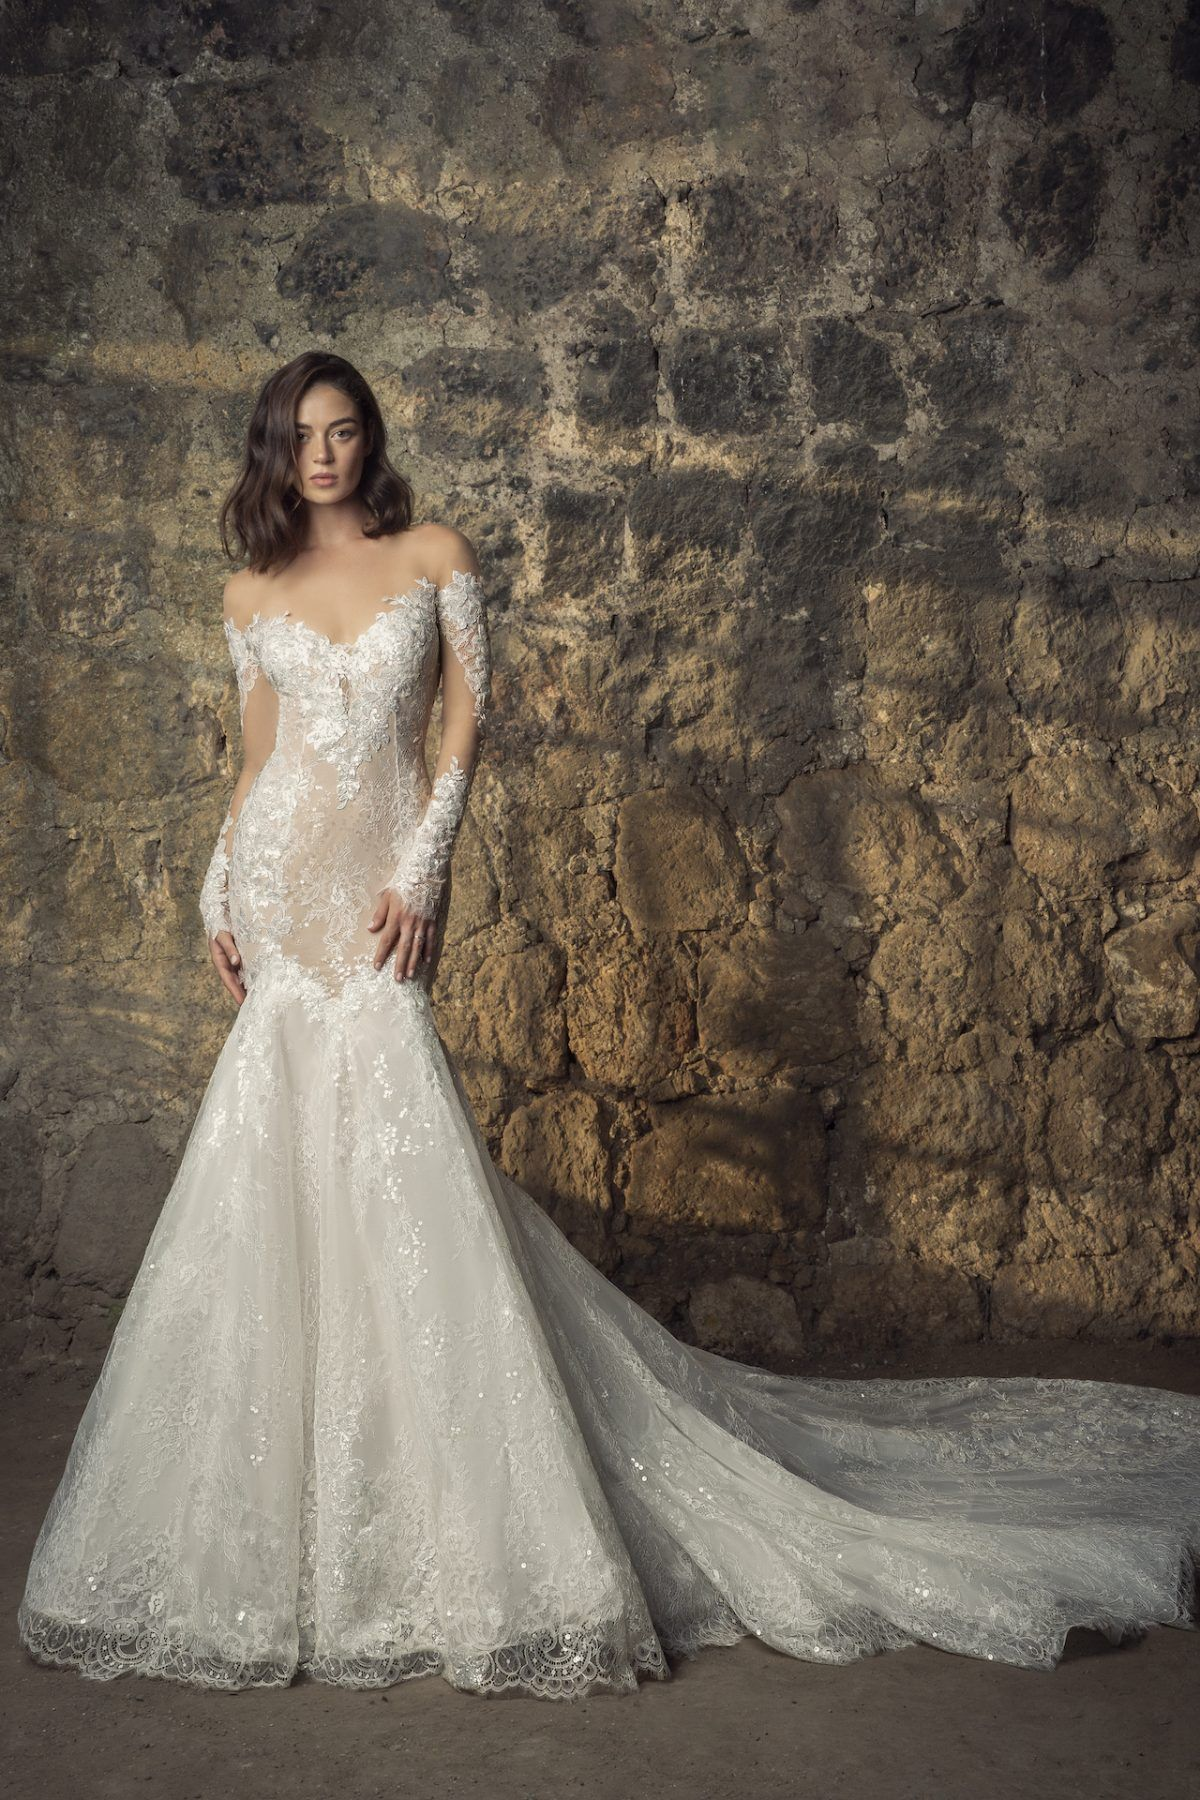 Off The Shoulder Long Sleeve Lace Mermaid Wedding Dress With Sequin Floral Appliques Kleinfeld Bridal Long Sleeve Wedding Dress Lace Mermaid Long Sleeve Wedding Dress Lace Mermaid Wedding Dress With Sleeves [ 1800 x 1200 Pixel ]